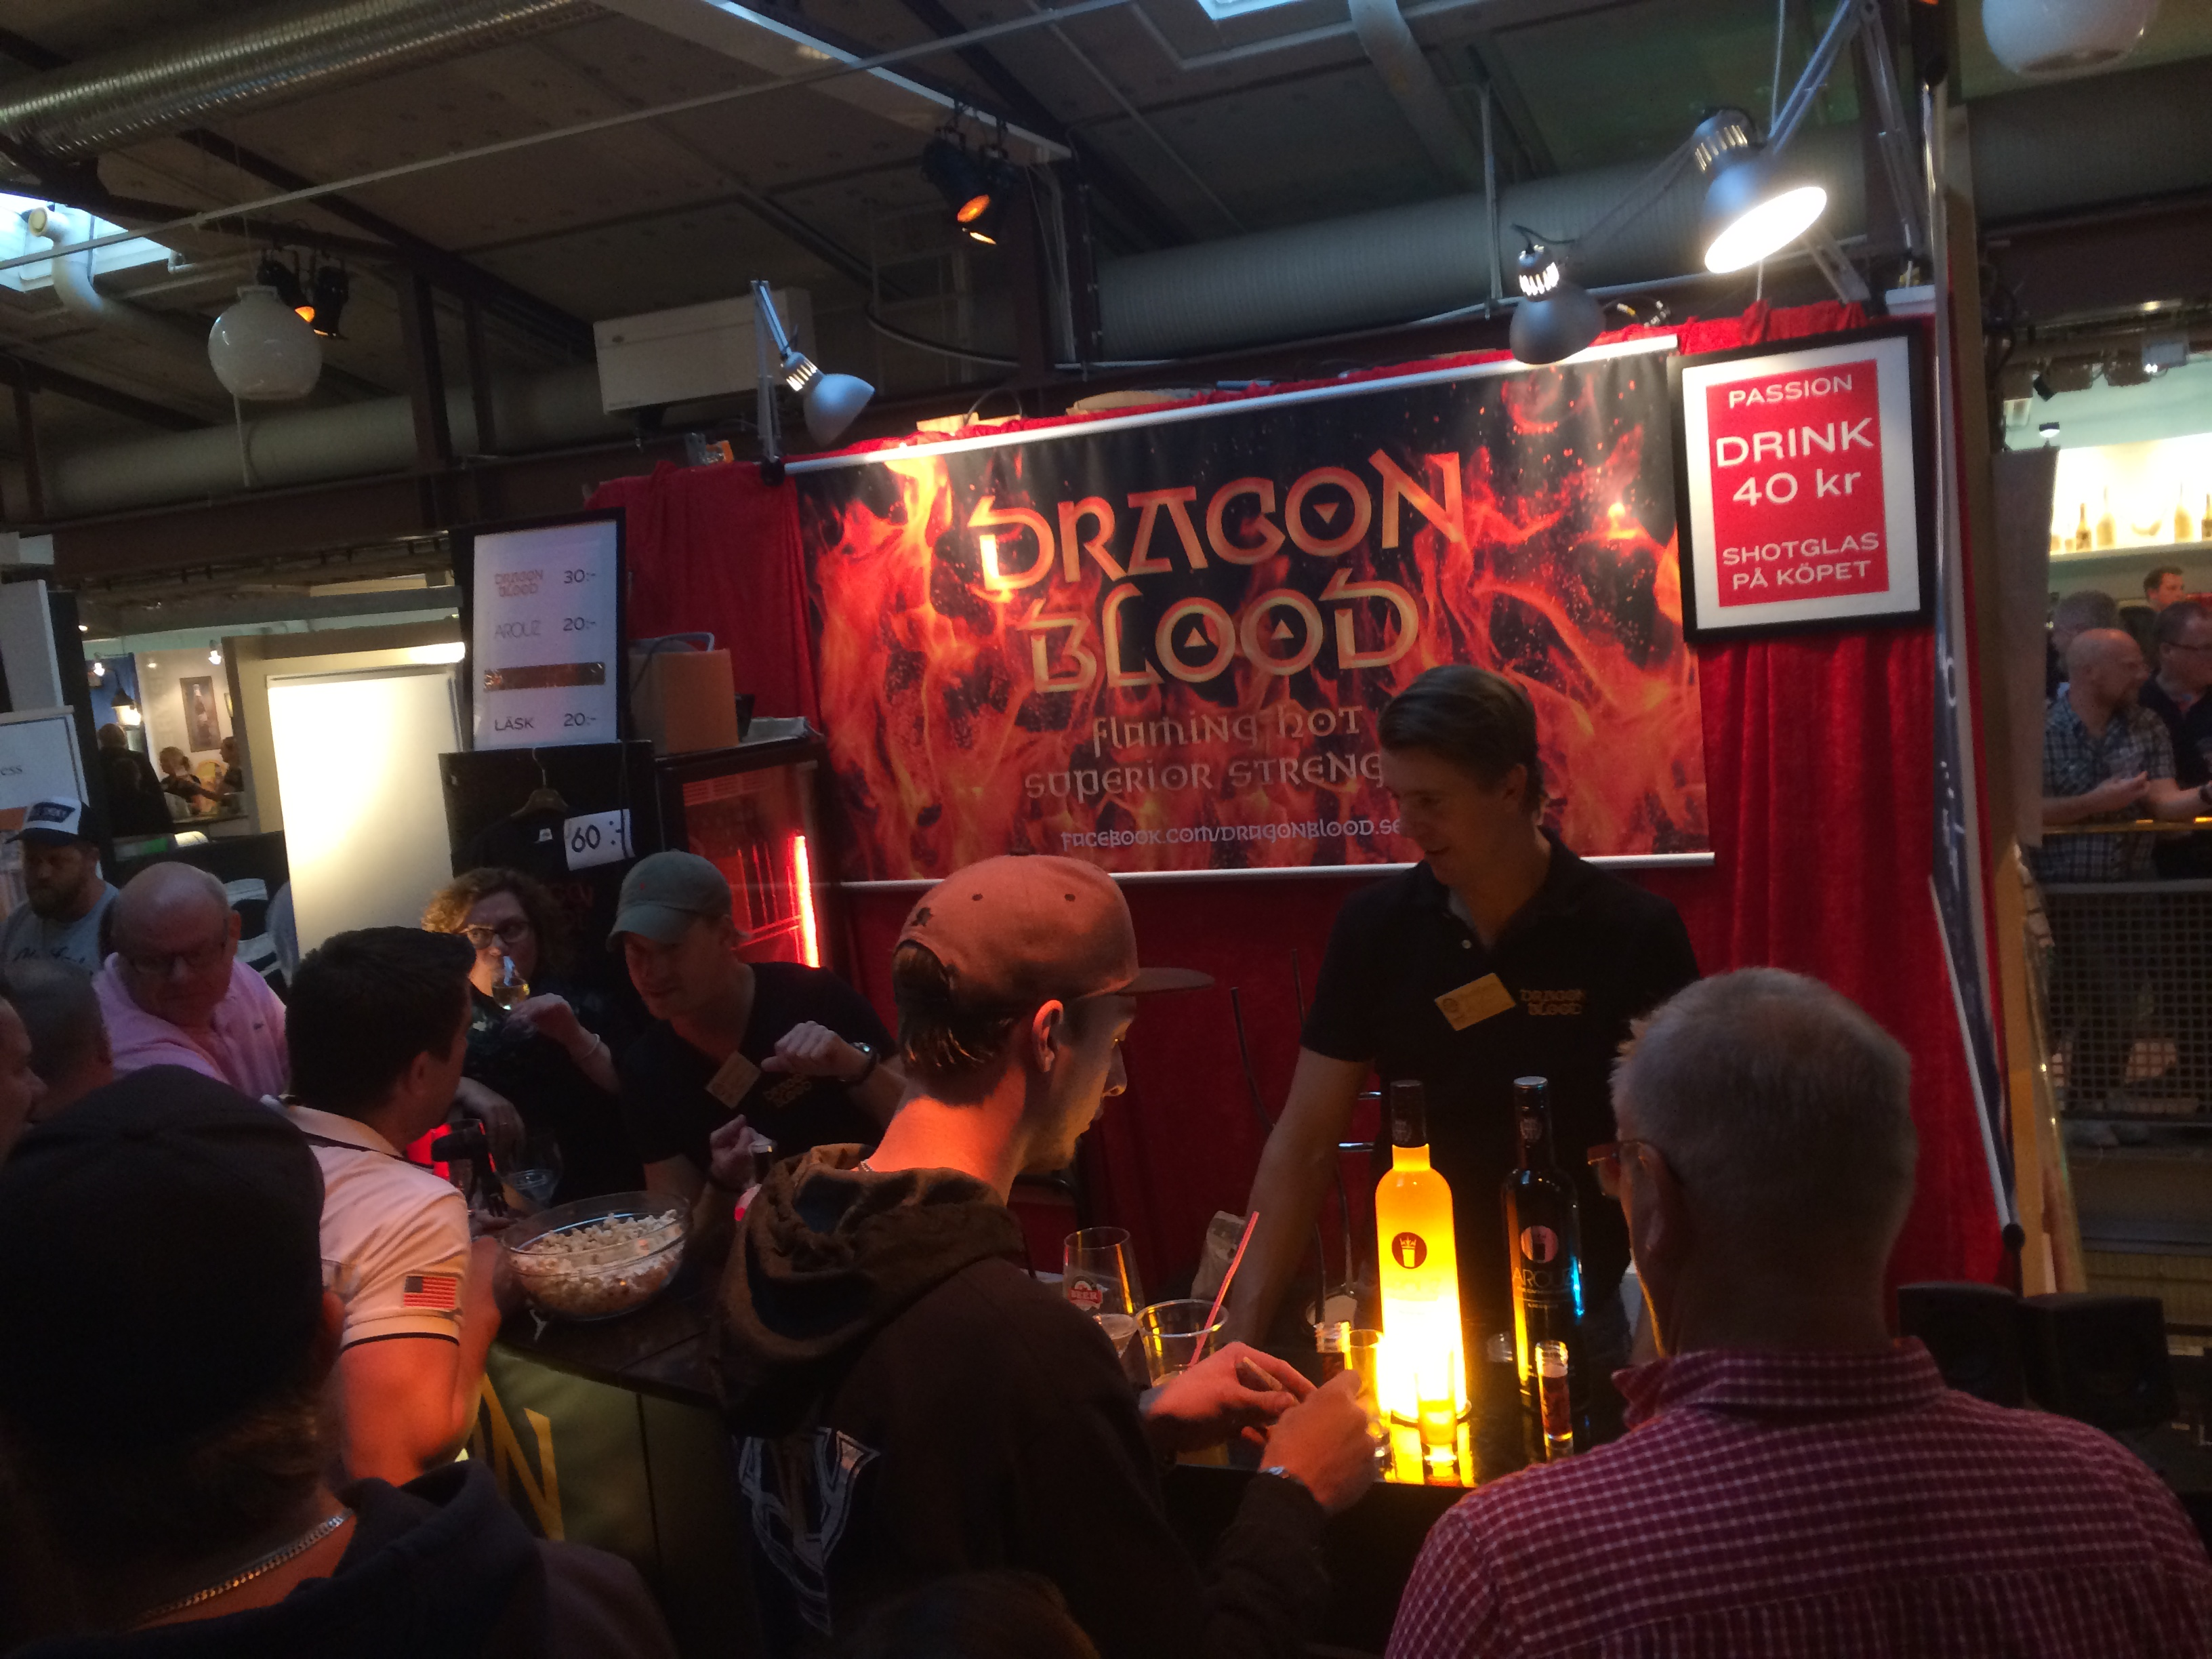 Dragon Blood exhibition success